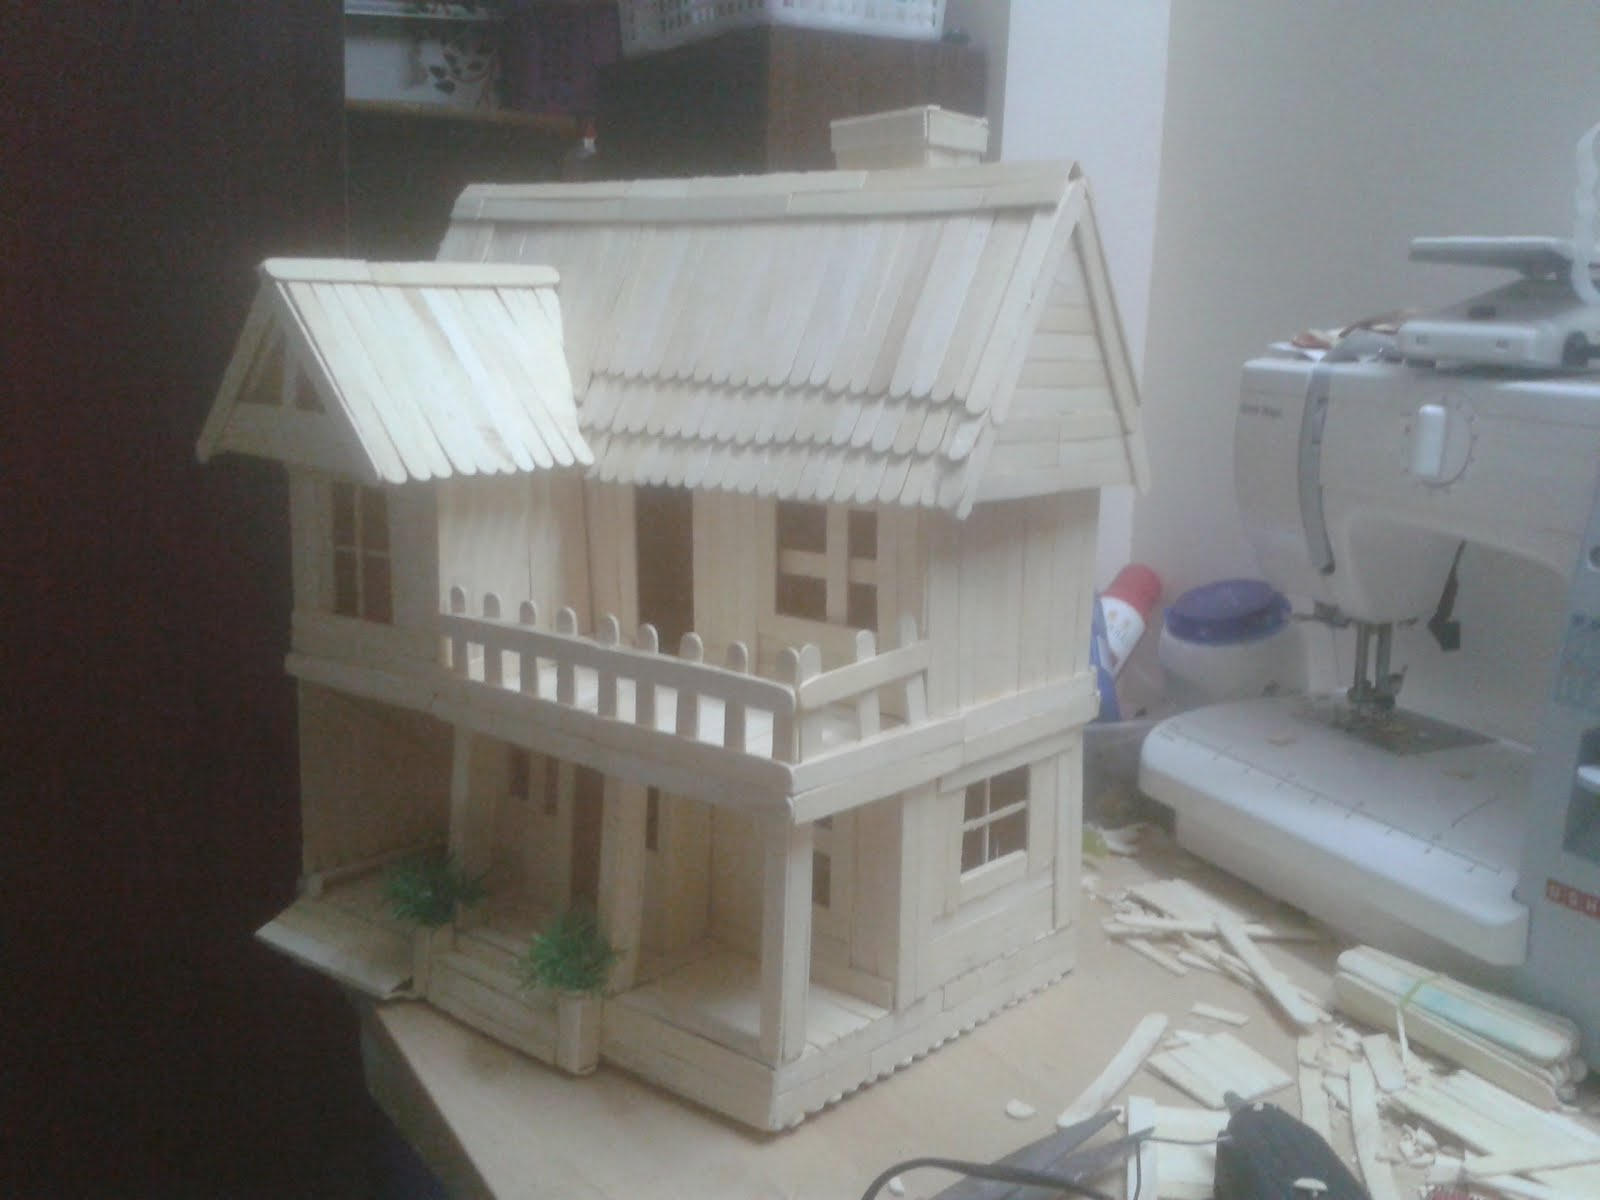 Building a model home for school